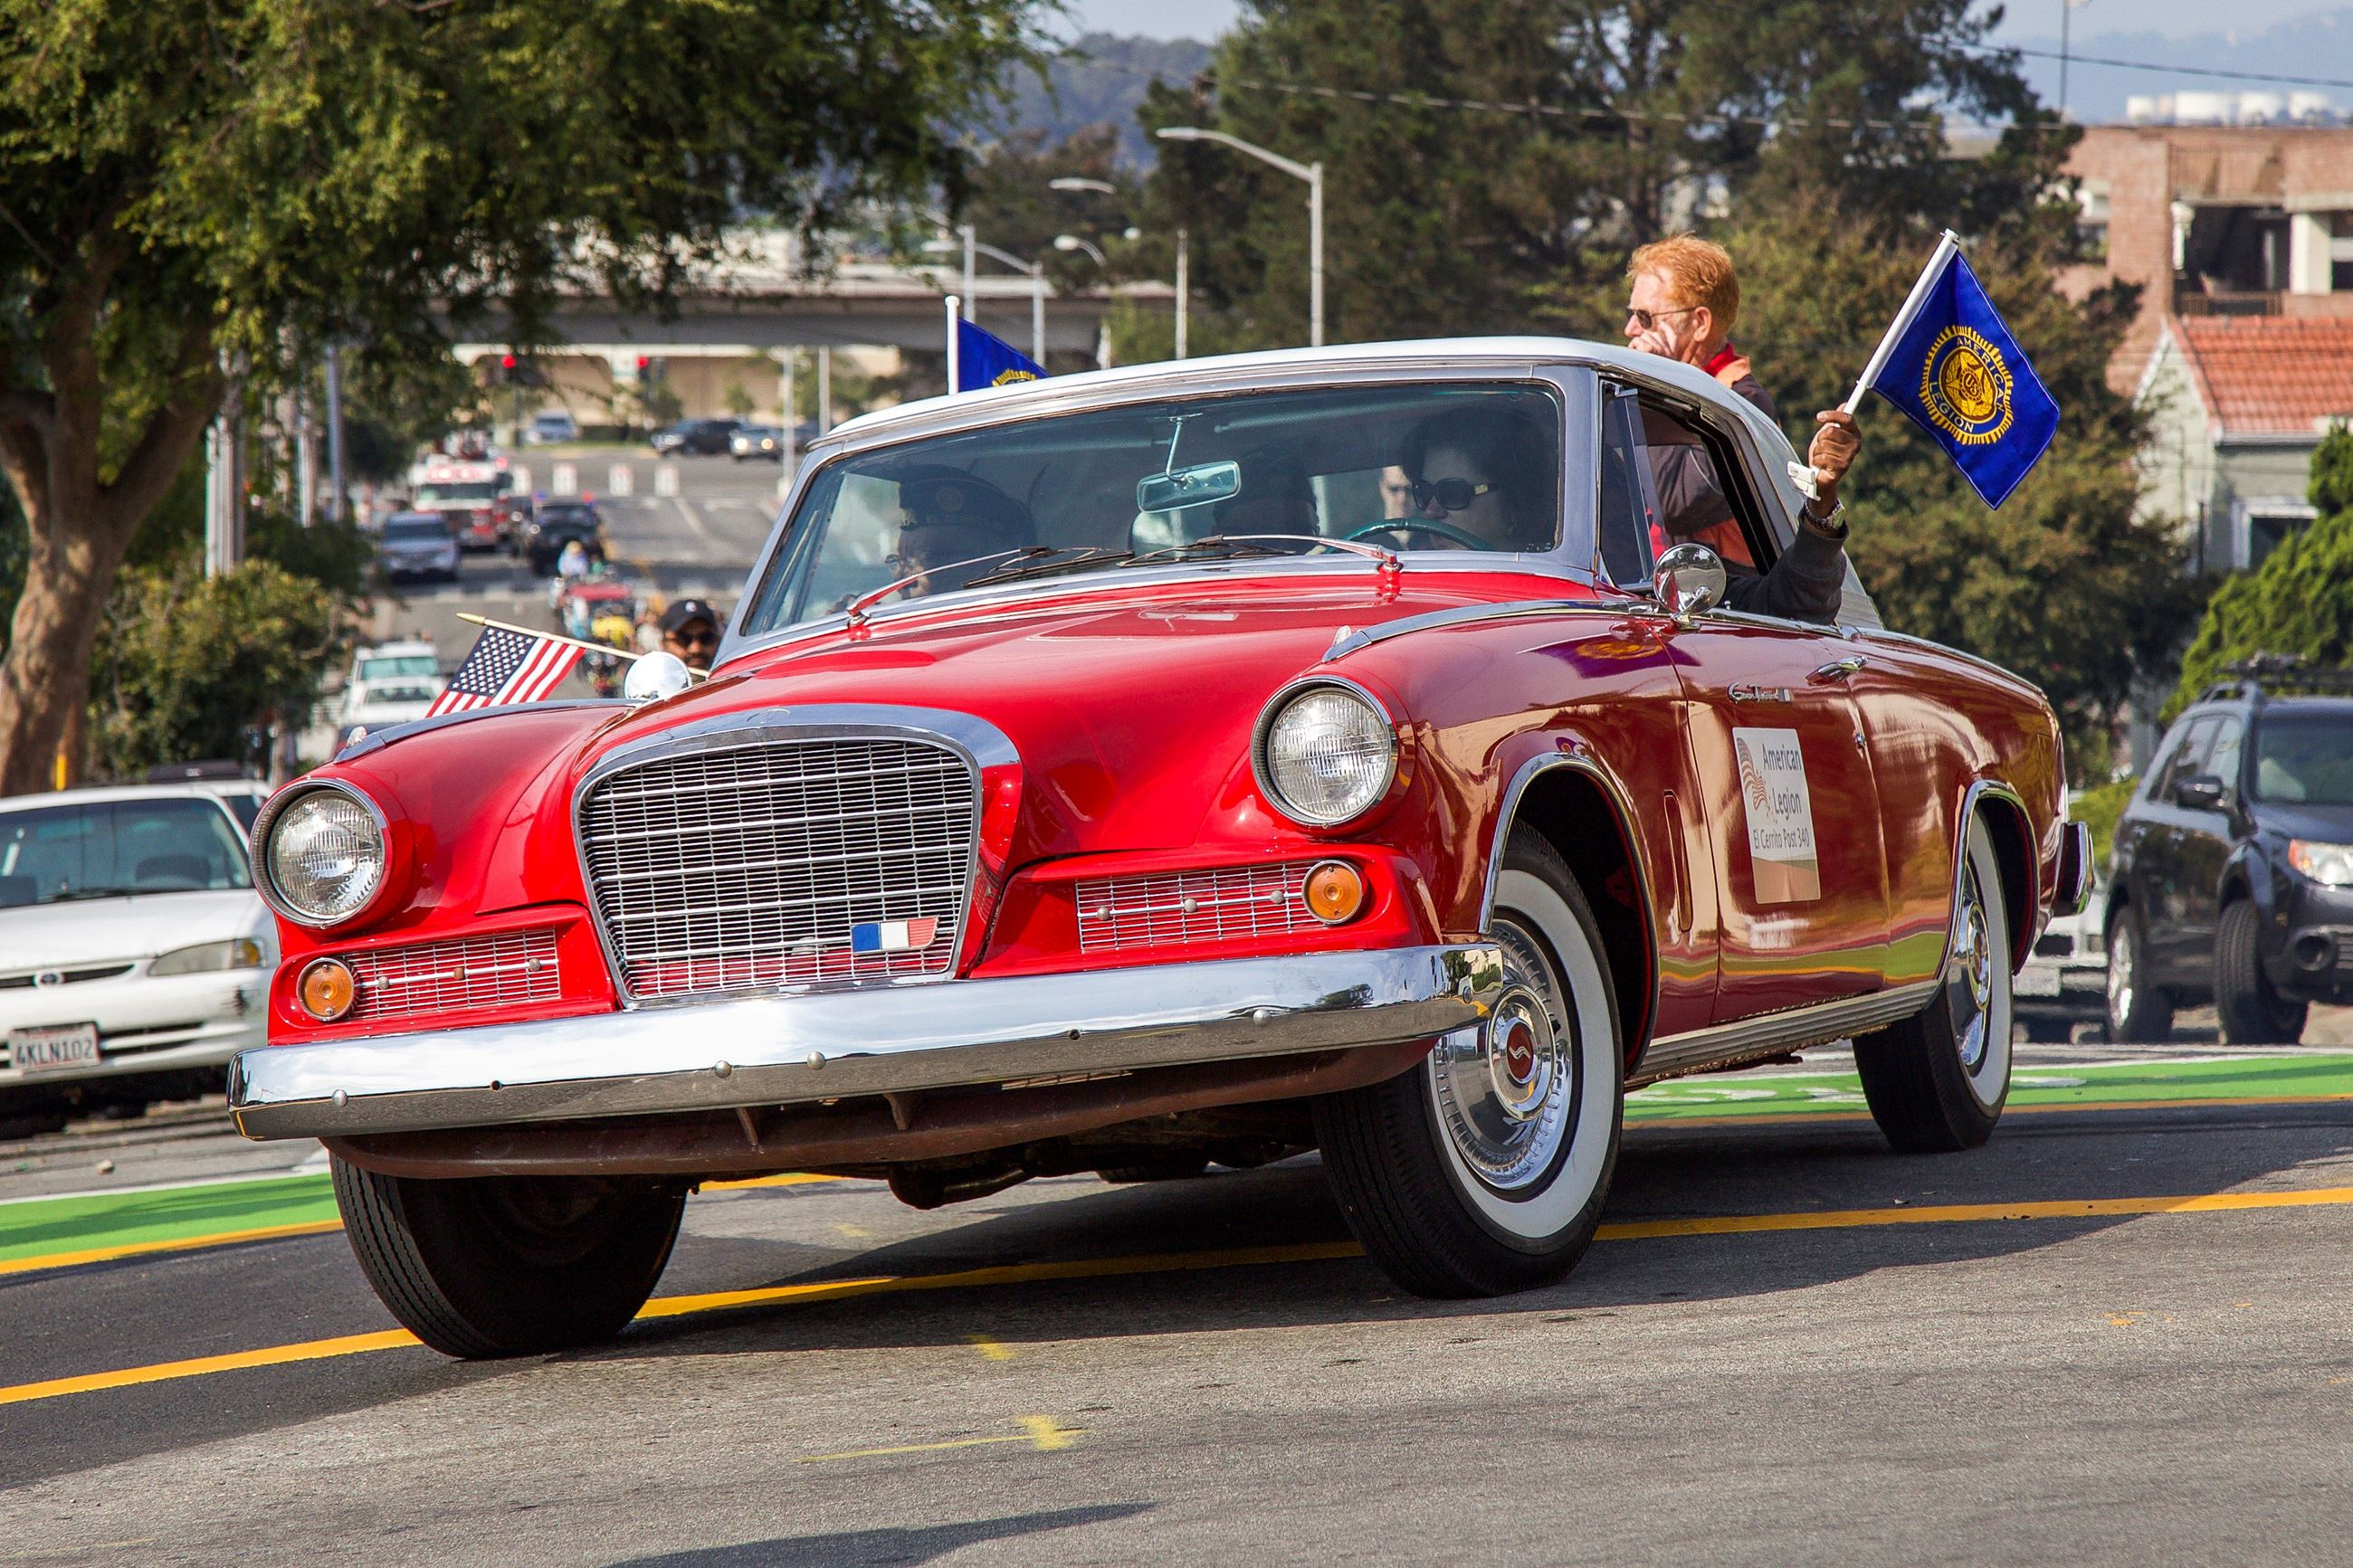 202 American Legion in Parade - Photo by Marin Stuart